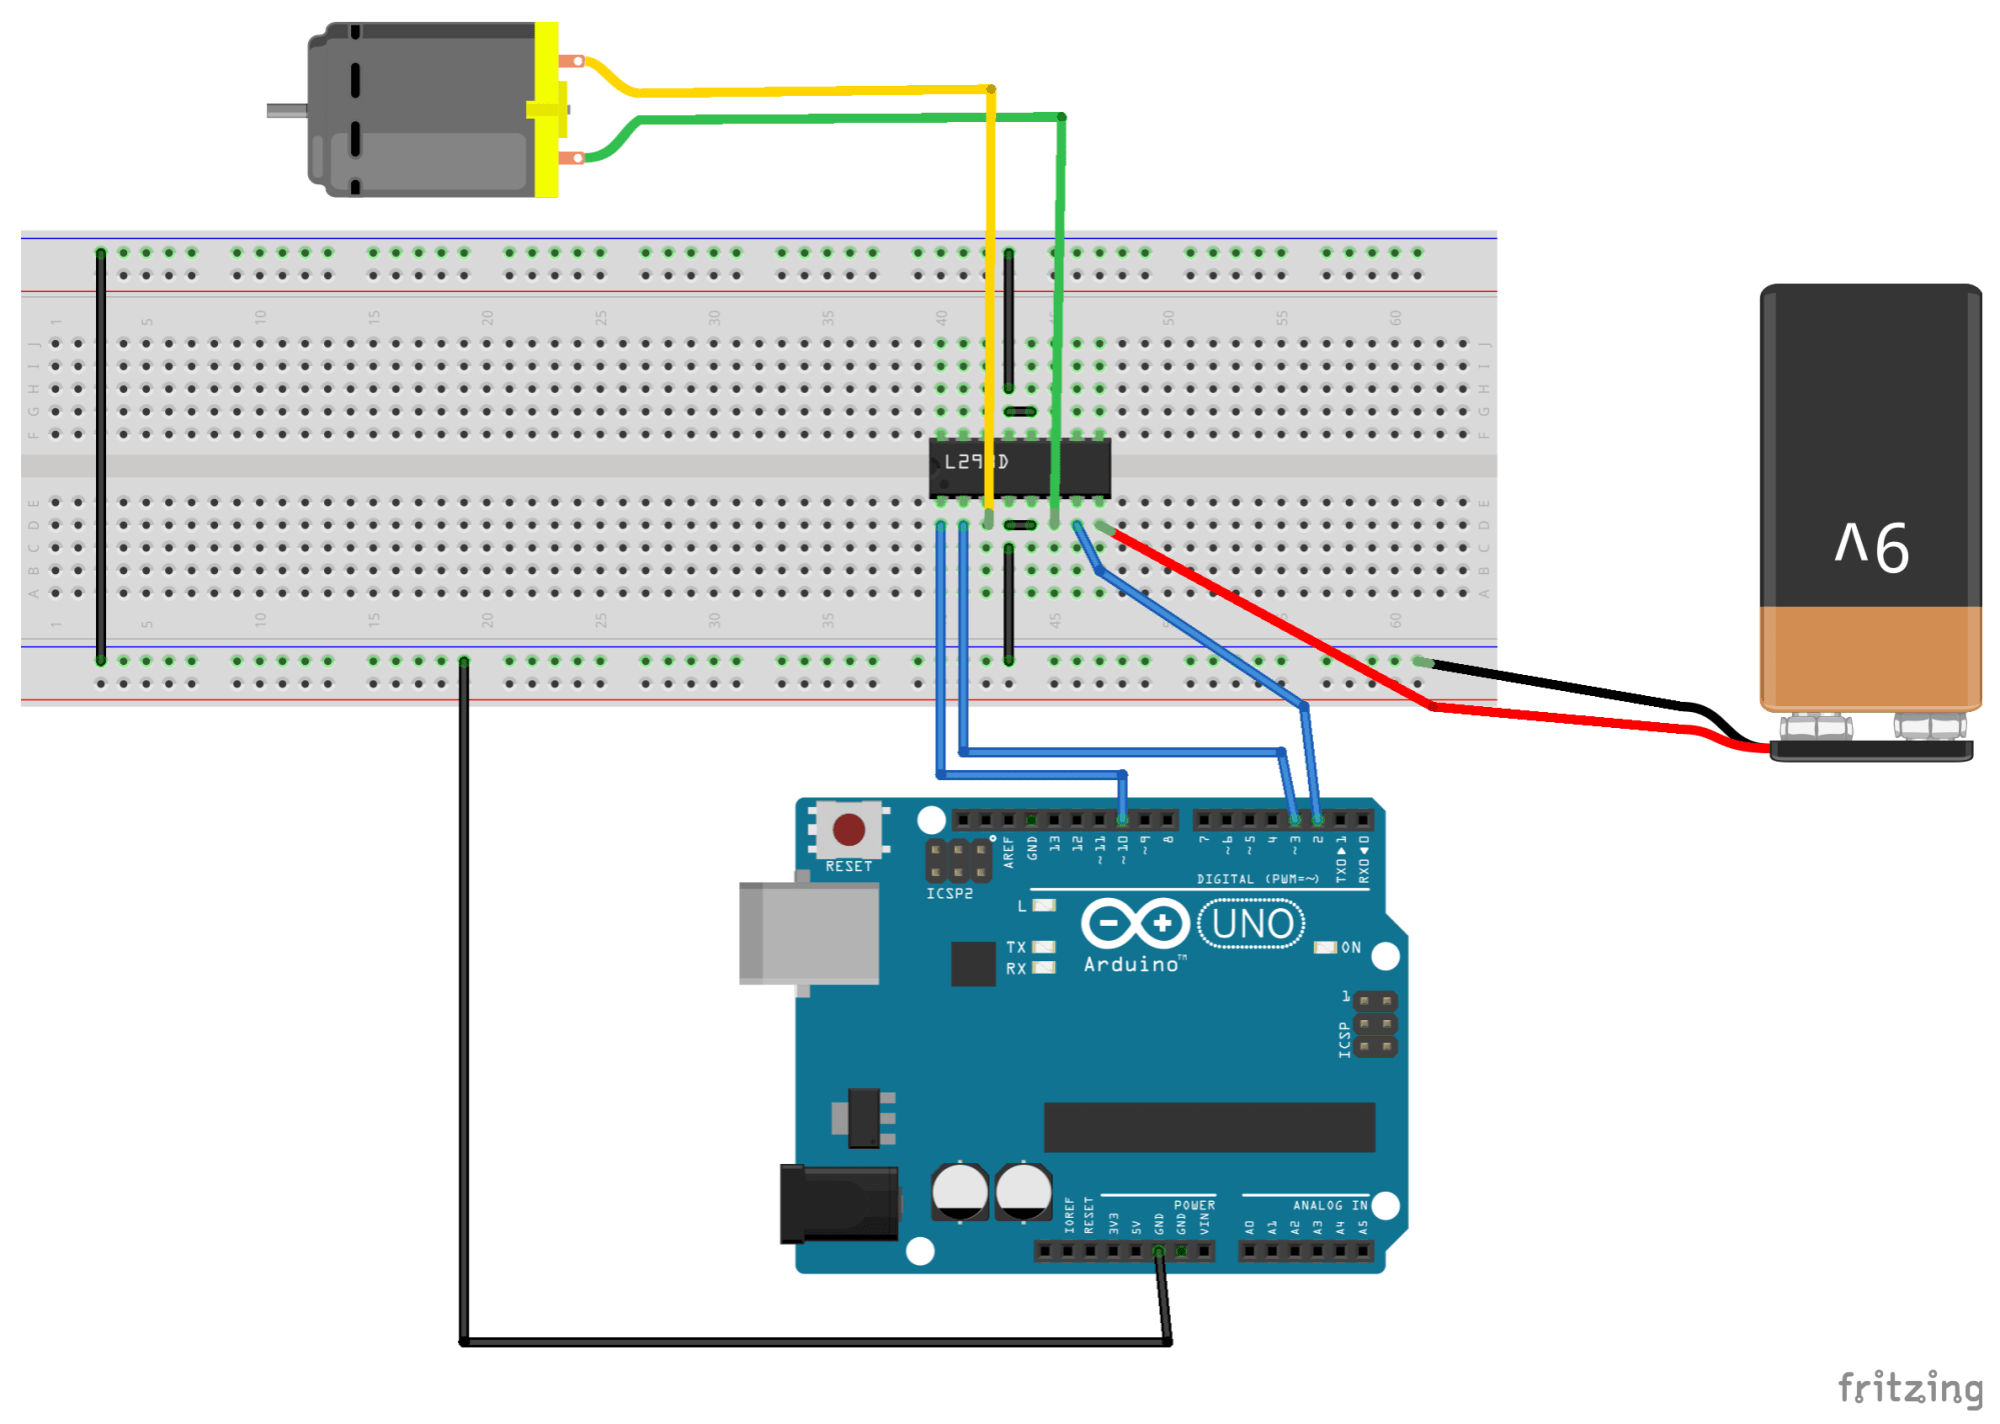 hight resolution of before we explain this diagram let s look at the circuit diagram for the l293d chip circuit as well because there are a lot of similarities between these